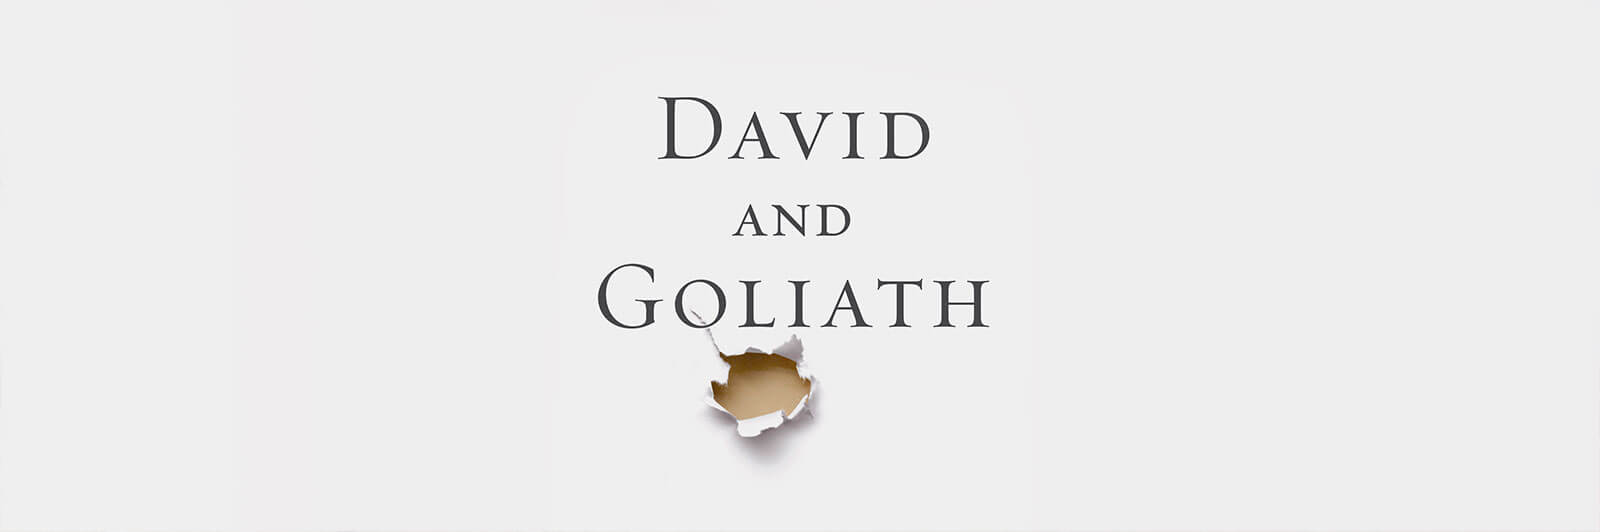 "Hole punched through white paper below ""David and Goliath"" title"